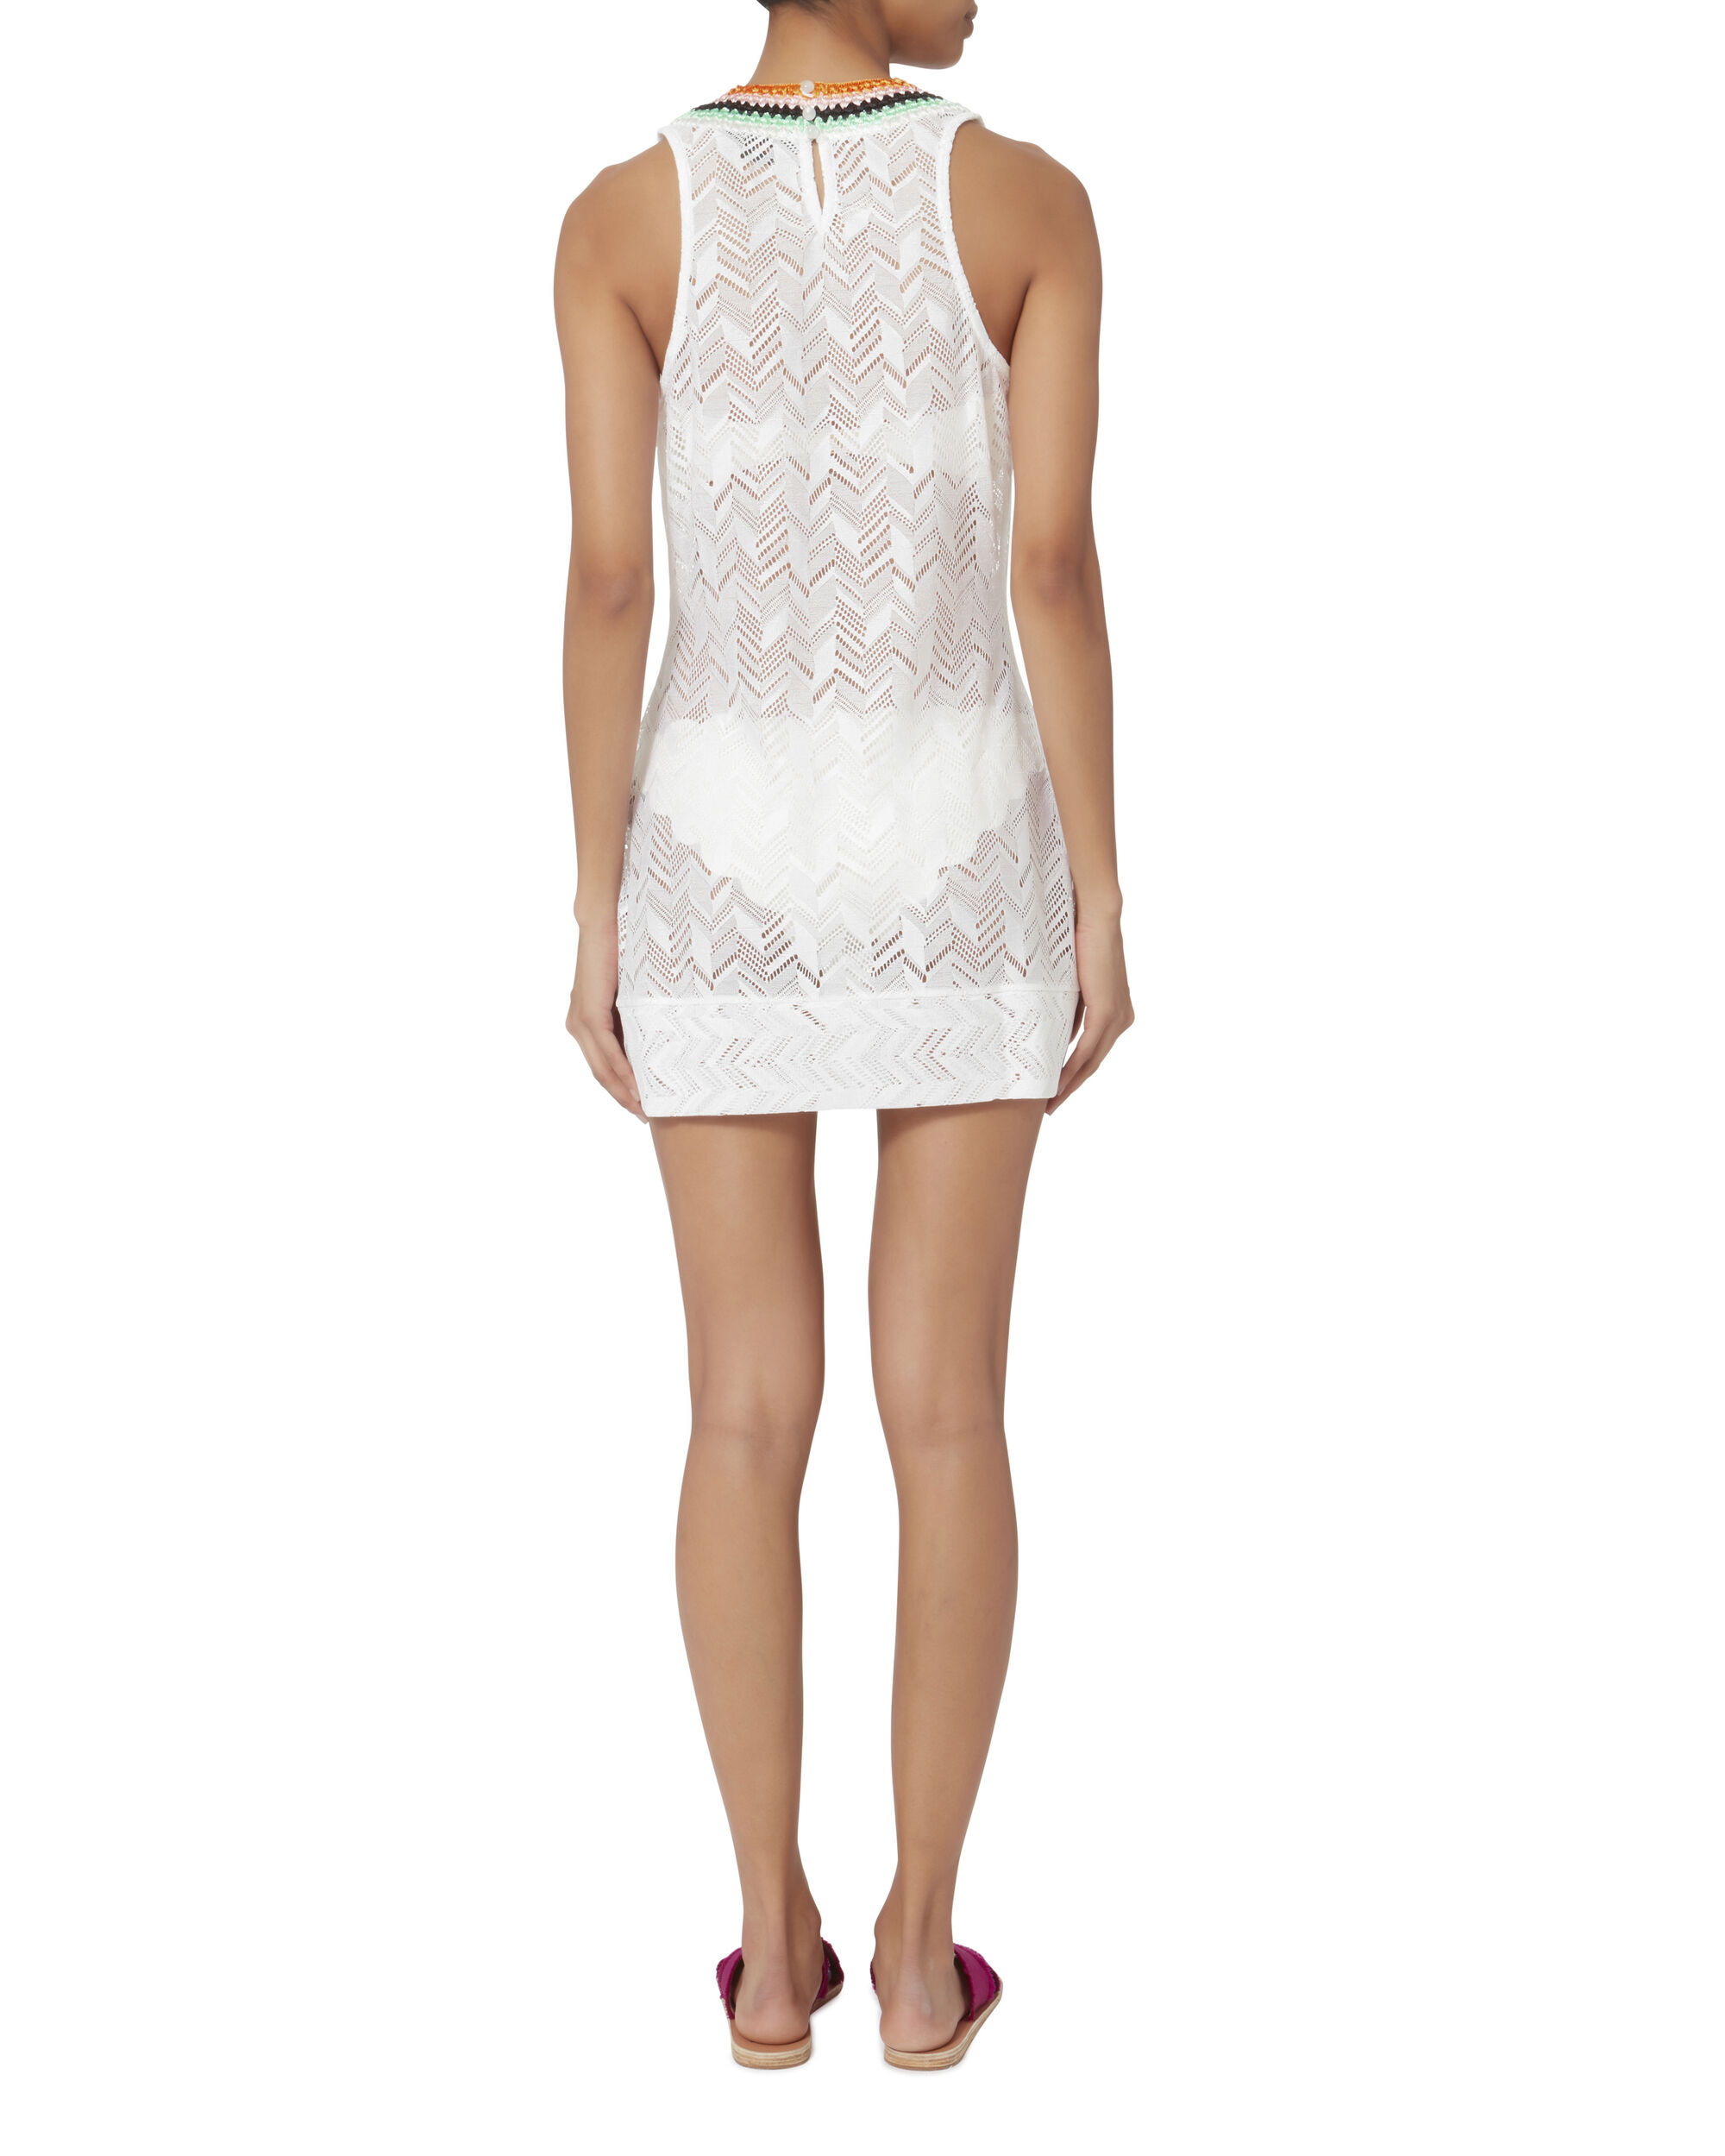 Zig Zag Crochet Trim Mini Dress, WHITE, hi-res